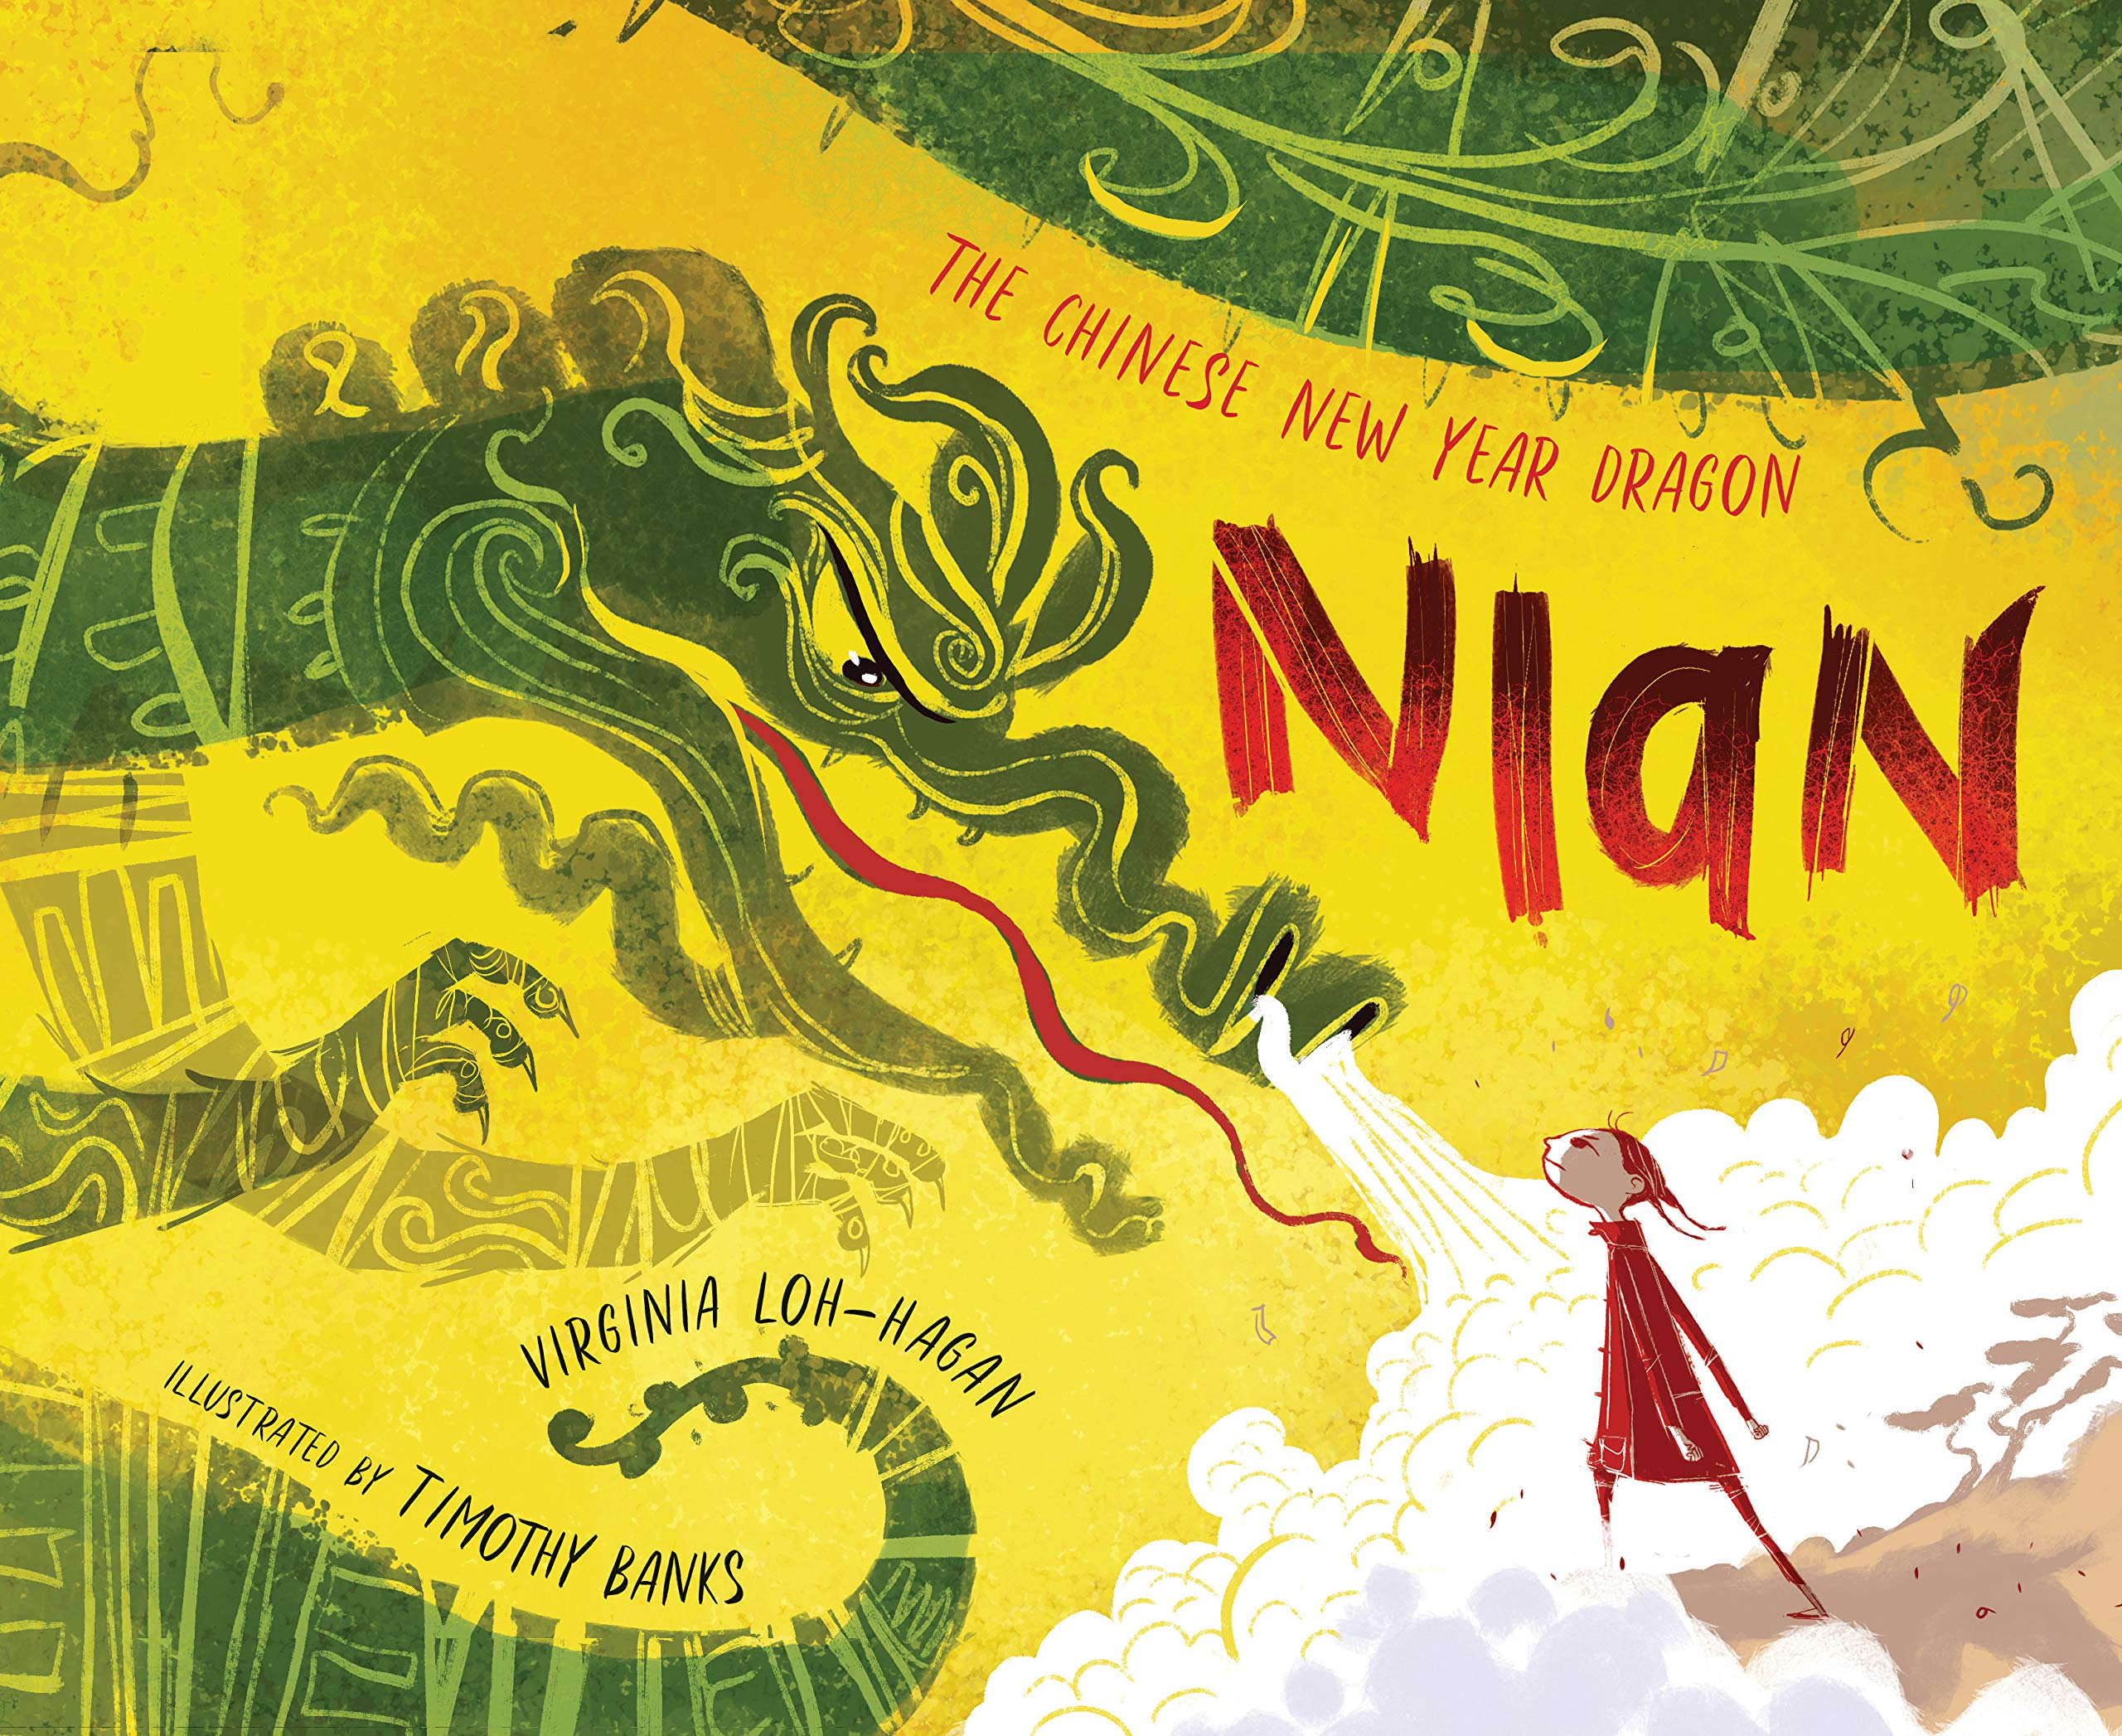 celebrate-picture-books-picture-book-review-nian-the-chinese-new-year-dragon-cover